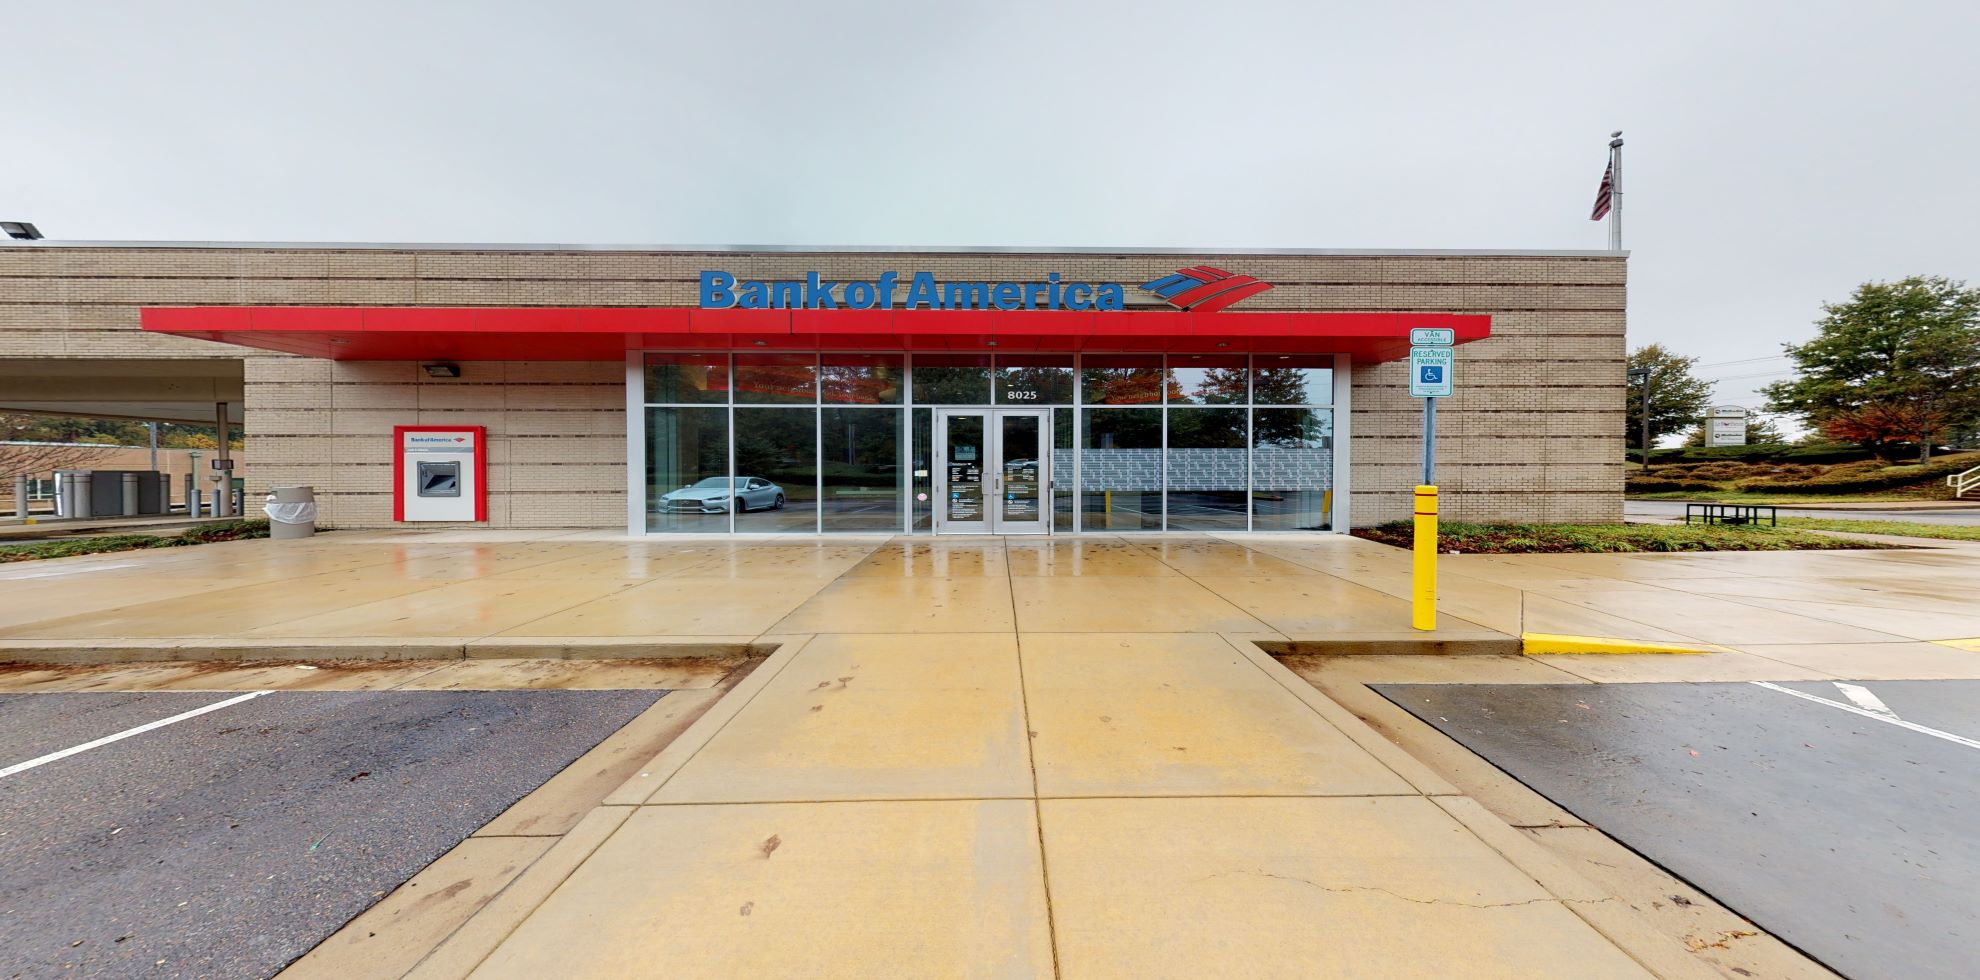 Bank of America financial center with drive-thru ATM | 8025 Winchester Rd, Memphis, TN 38125